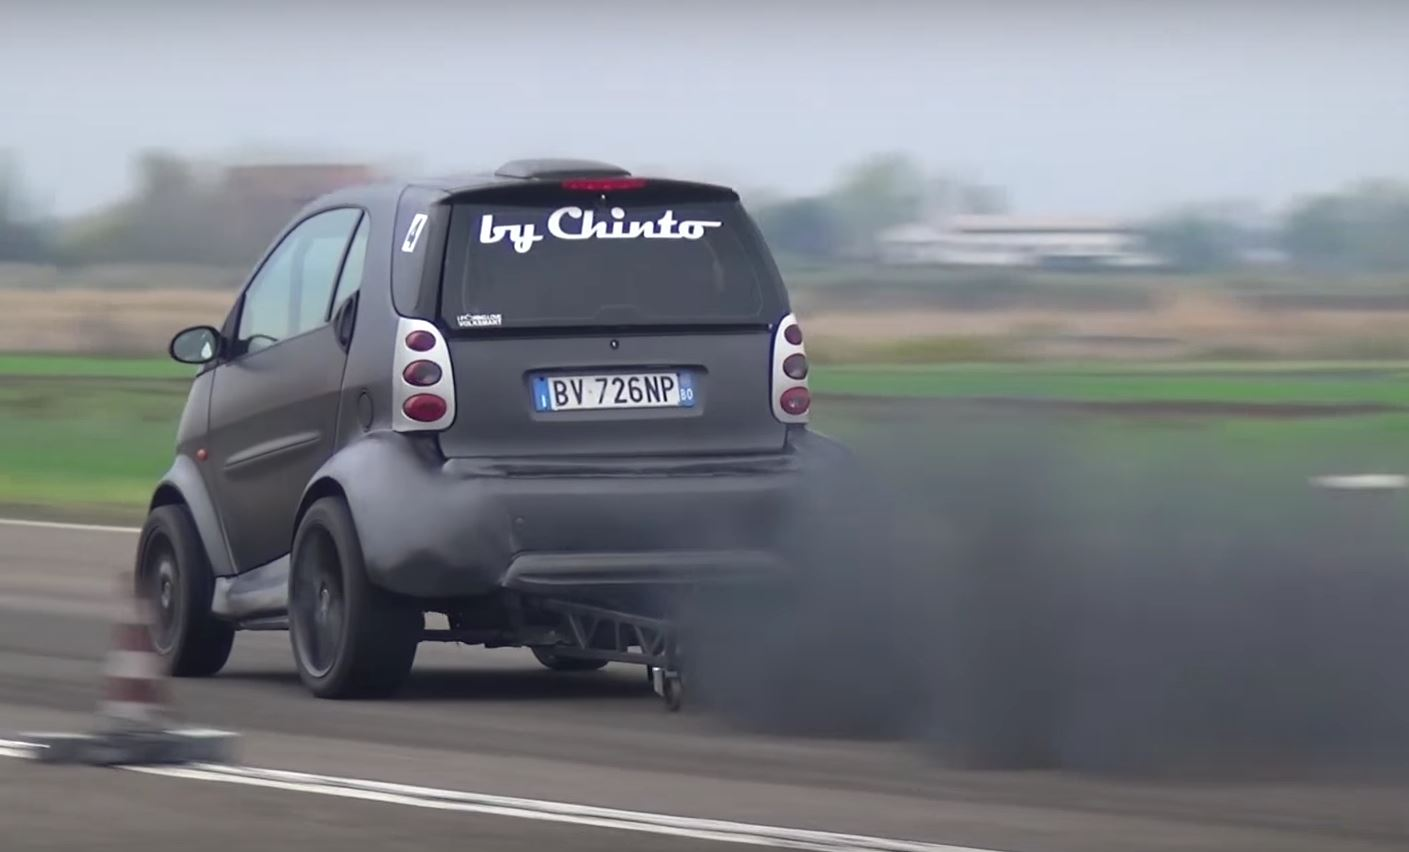 smart fortwo Dragster Has 1 9 TDI Engine Swap and 230 HP - autoevolution